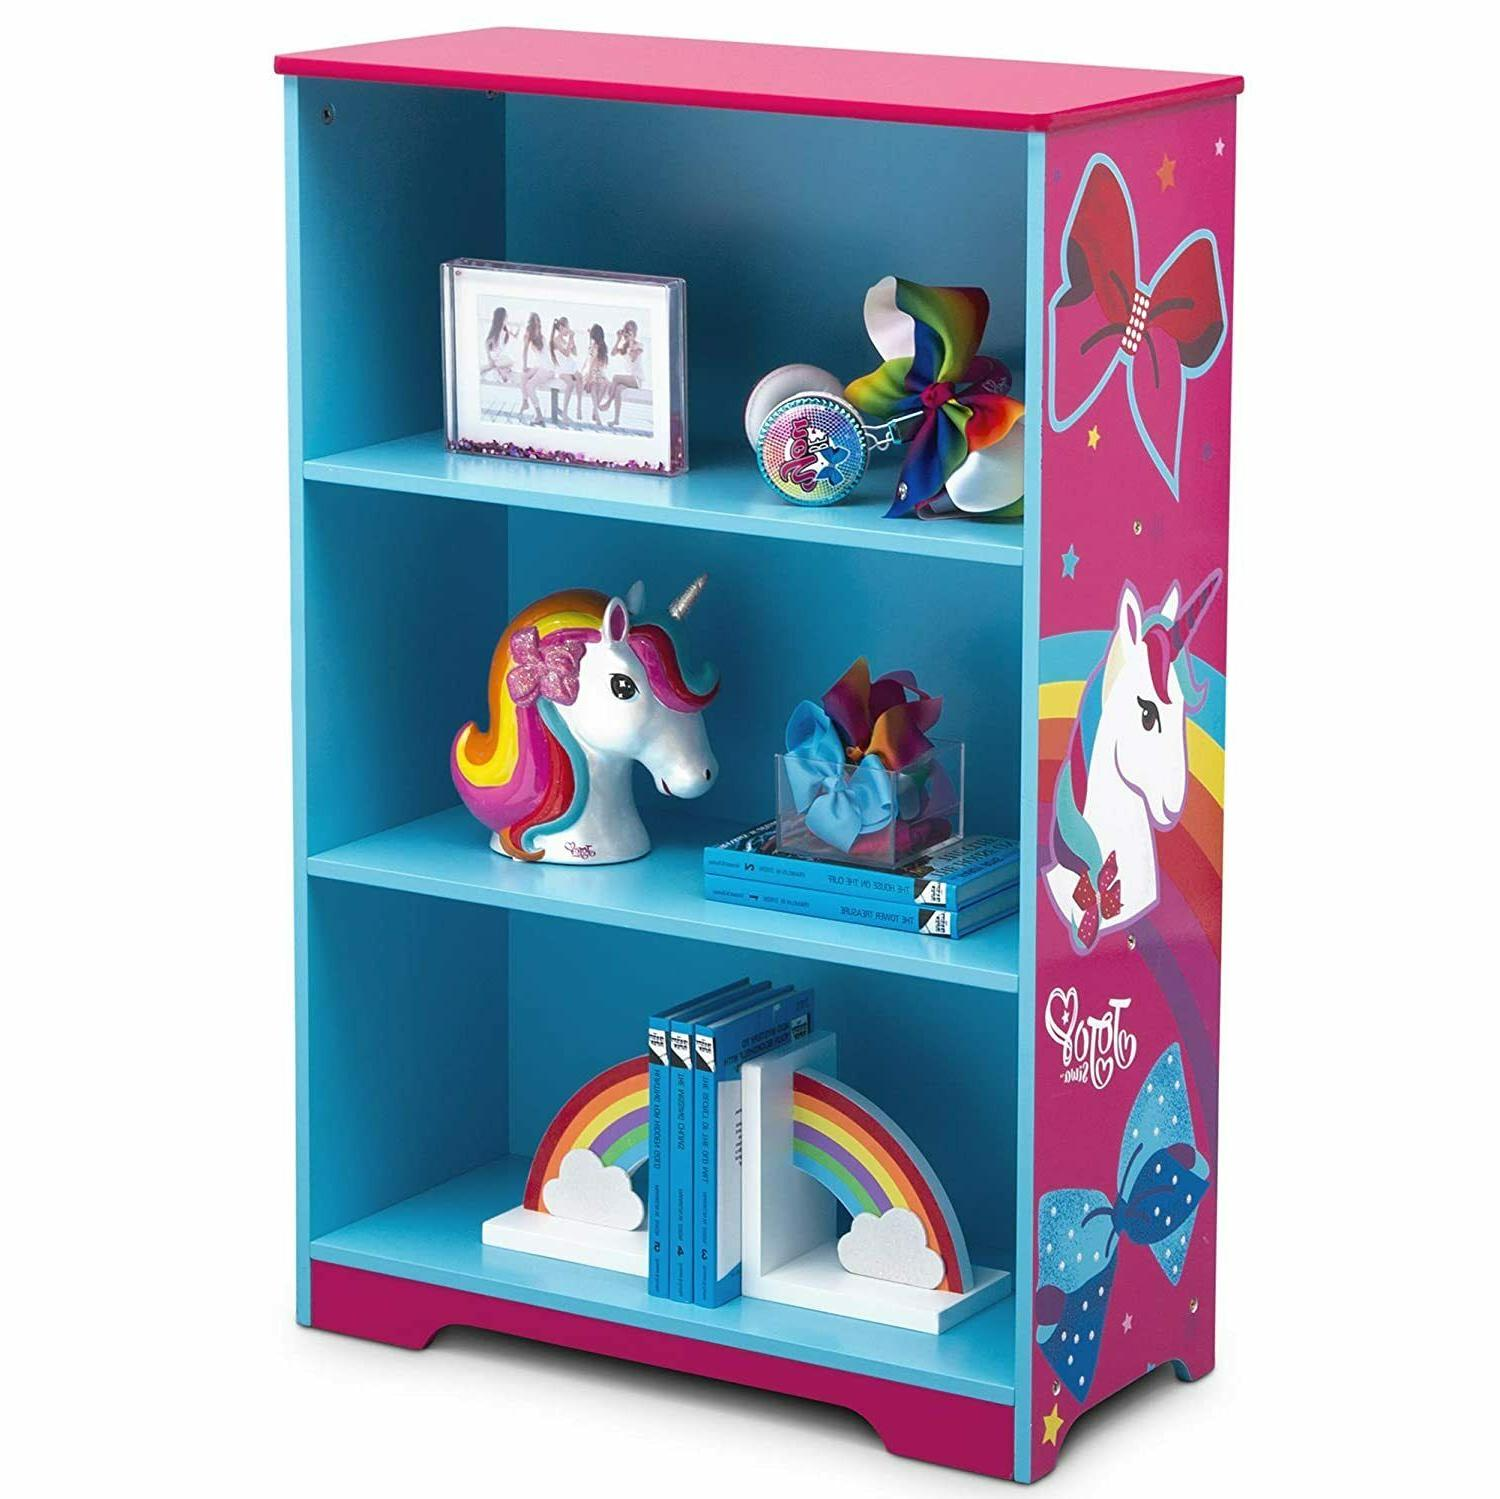 deluxe 3 shelf bookcase ideal for books